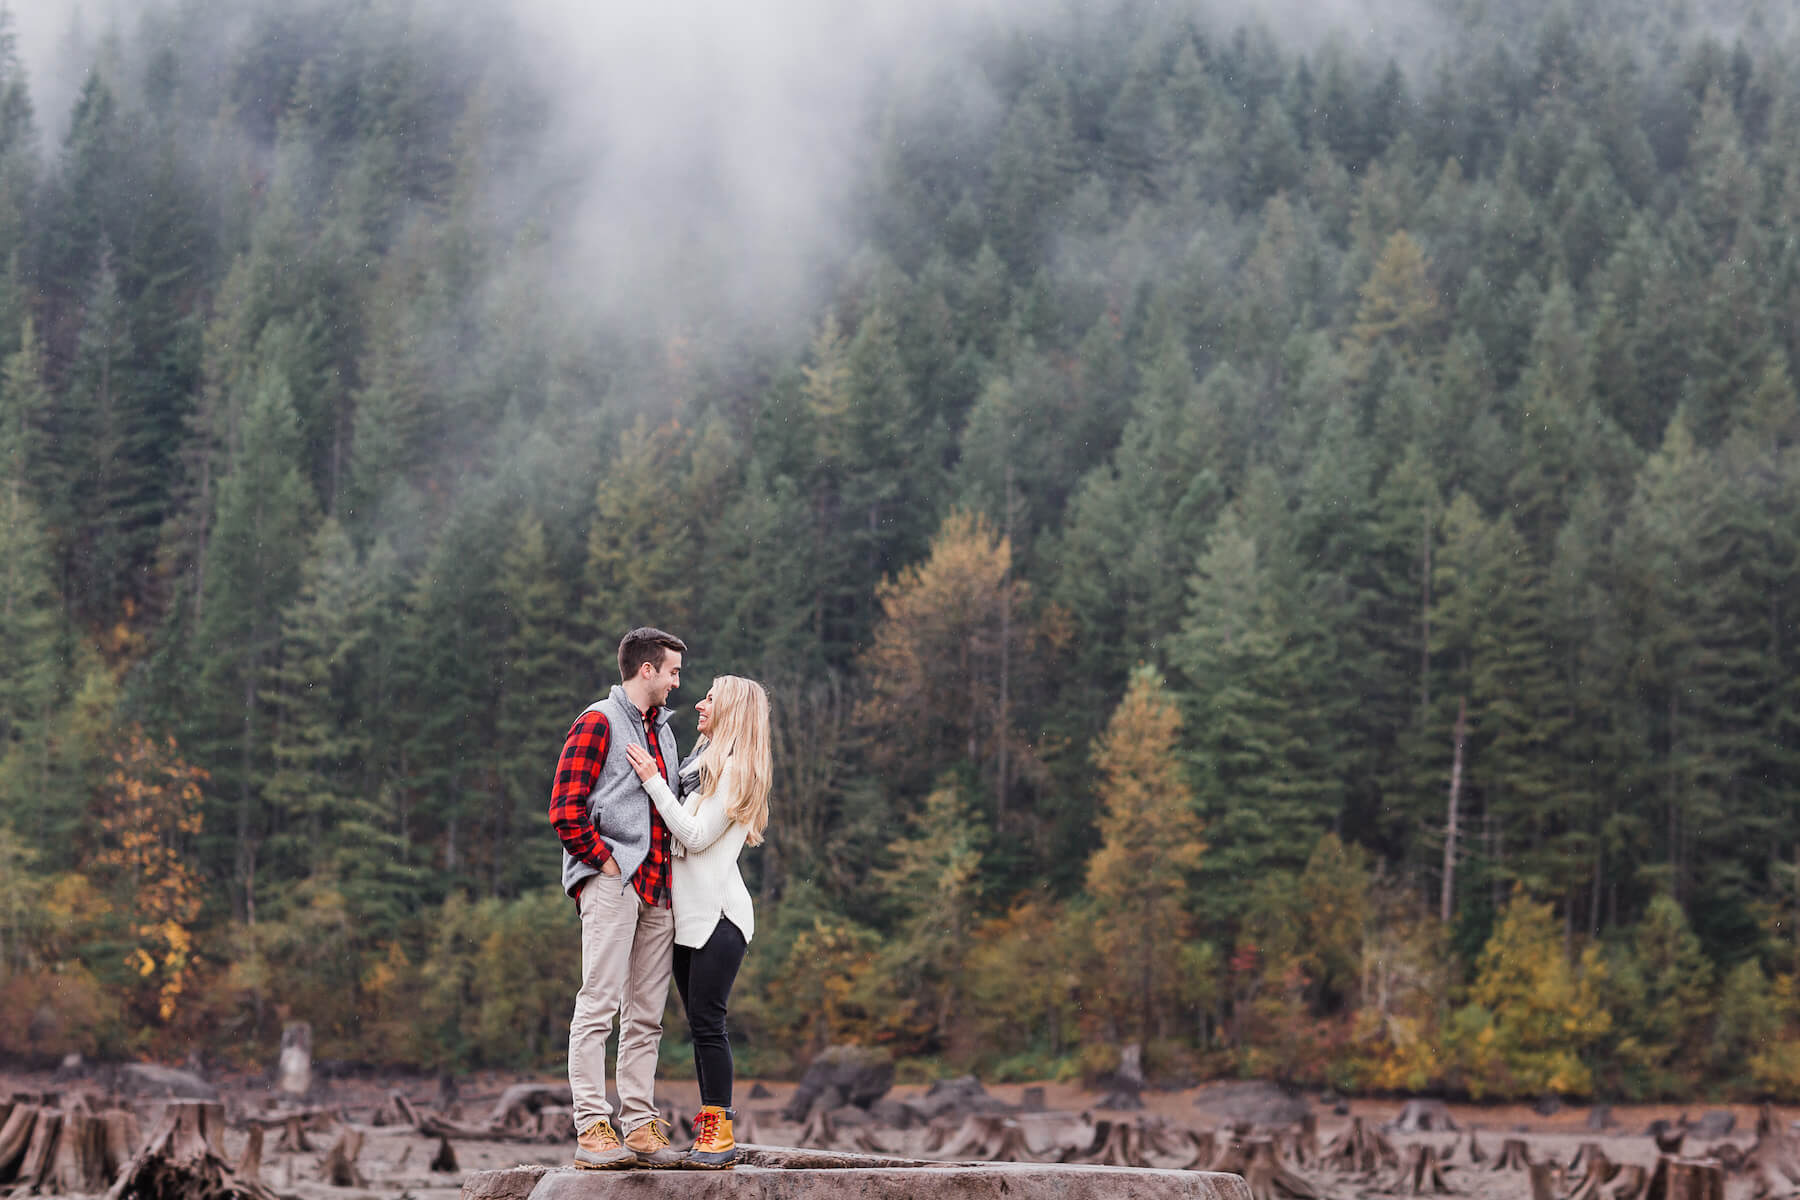 couple embracing at Rattle snake lake, it's foggy and raining in Seattle, Washington